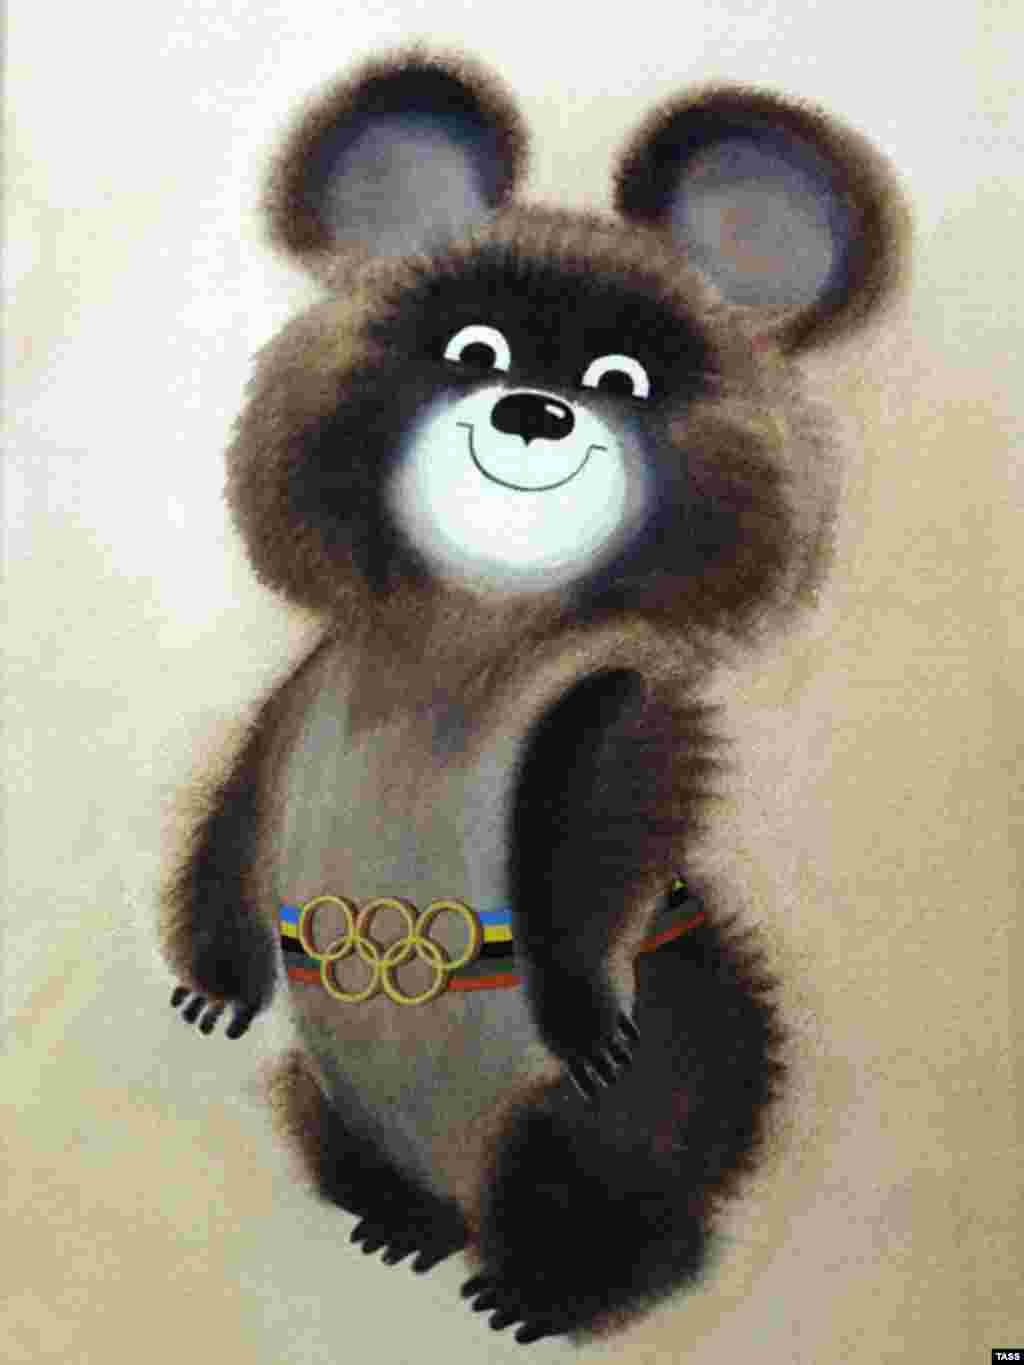 Misha was designed by illustrator Victor Chizhikov - Even Misha the Bear, the mascot of the 1980 Moscow Olympics, might ride the wave of Soviet nostalgia. Olympic planners are considering reviving Misha as the symbol of the 2014 Winter Games in the Russian resort of Sochi.